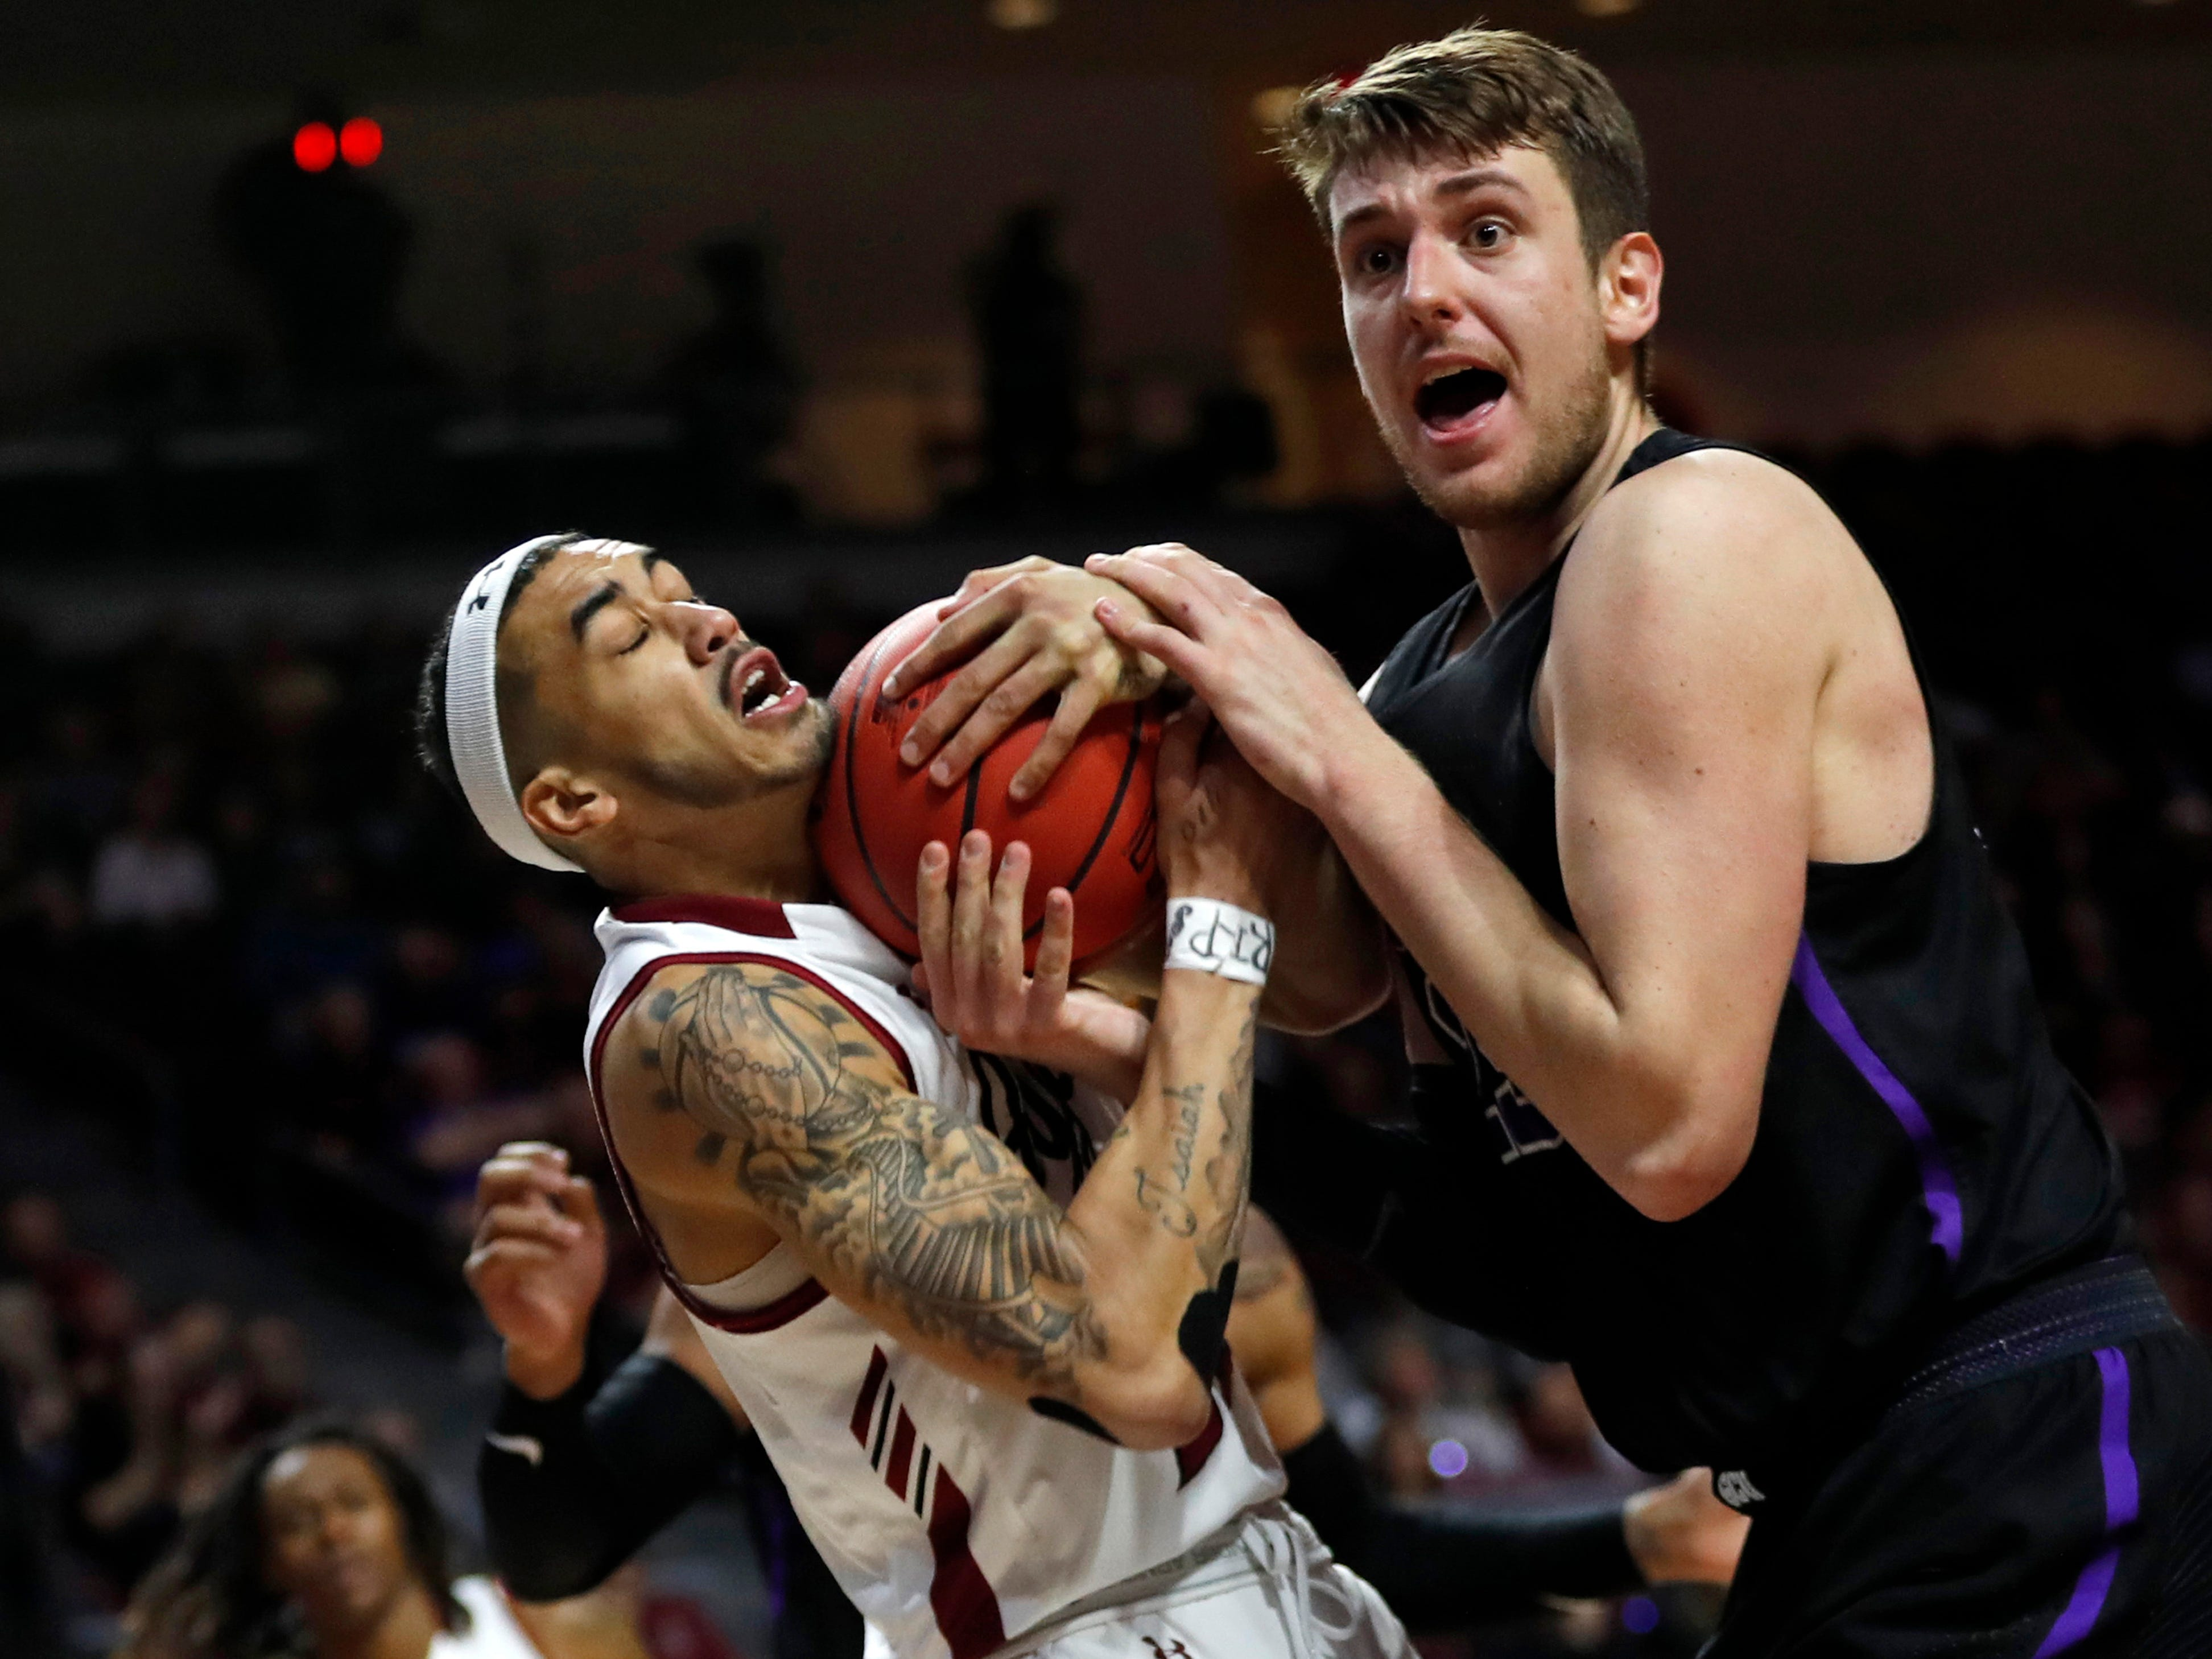 New Mexico State guard Trevelin Queen (20) and Grand Canyon's Alessandro Lever vie for a rebound during the first half of an NCAA college basketball game for the Western Athletic Conference men's tournament championship Saturday, March 16, 2019, in Las Vegas.